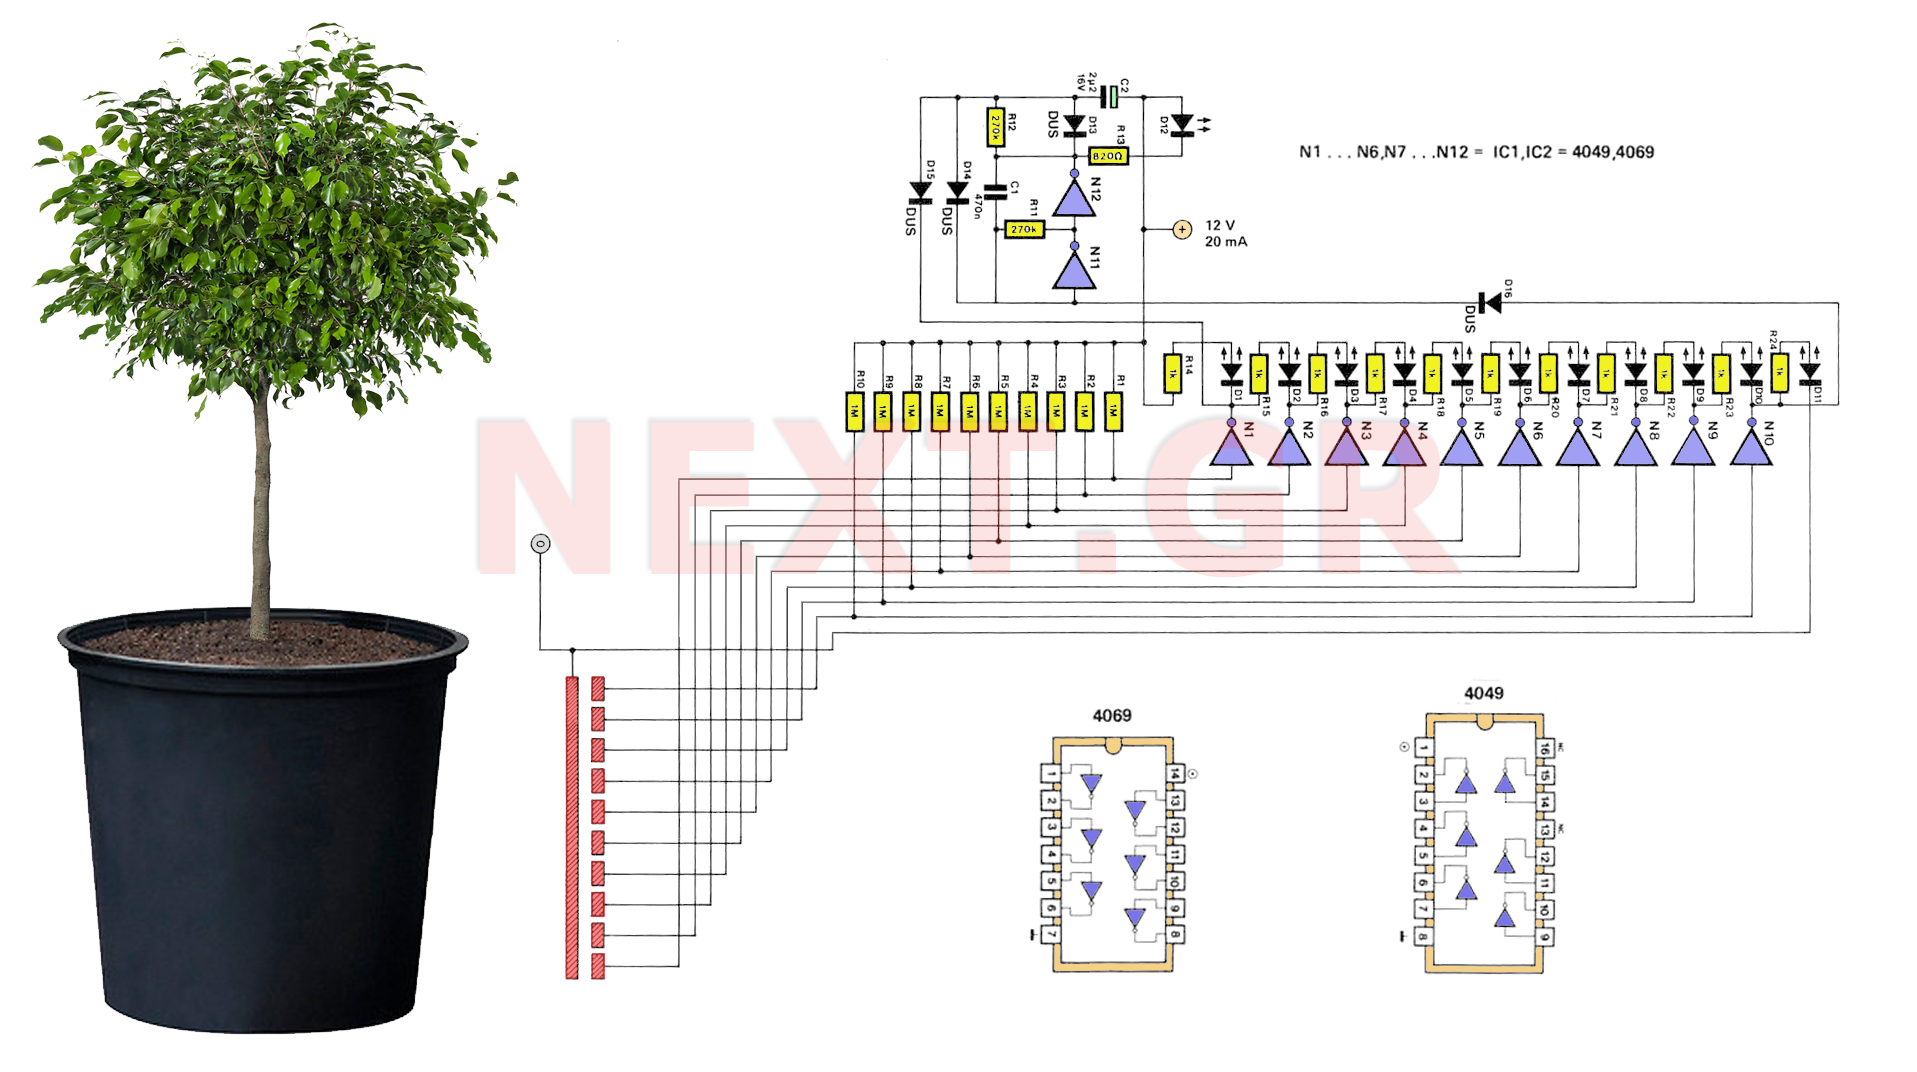 Metal Detector Circuit Sensors Detectors Circuits Page 3 Nextgr Plant Pot Water Level Indicator